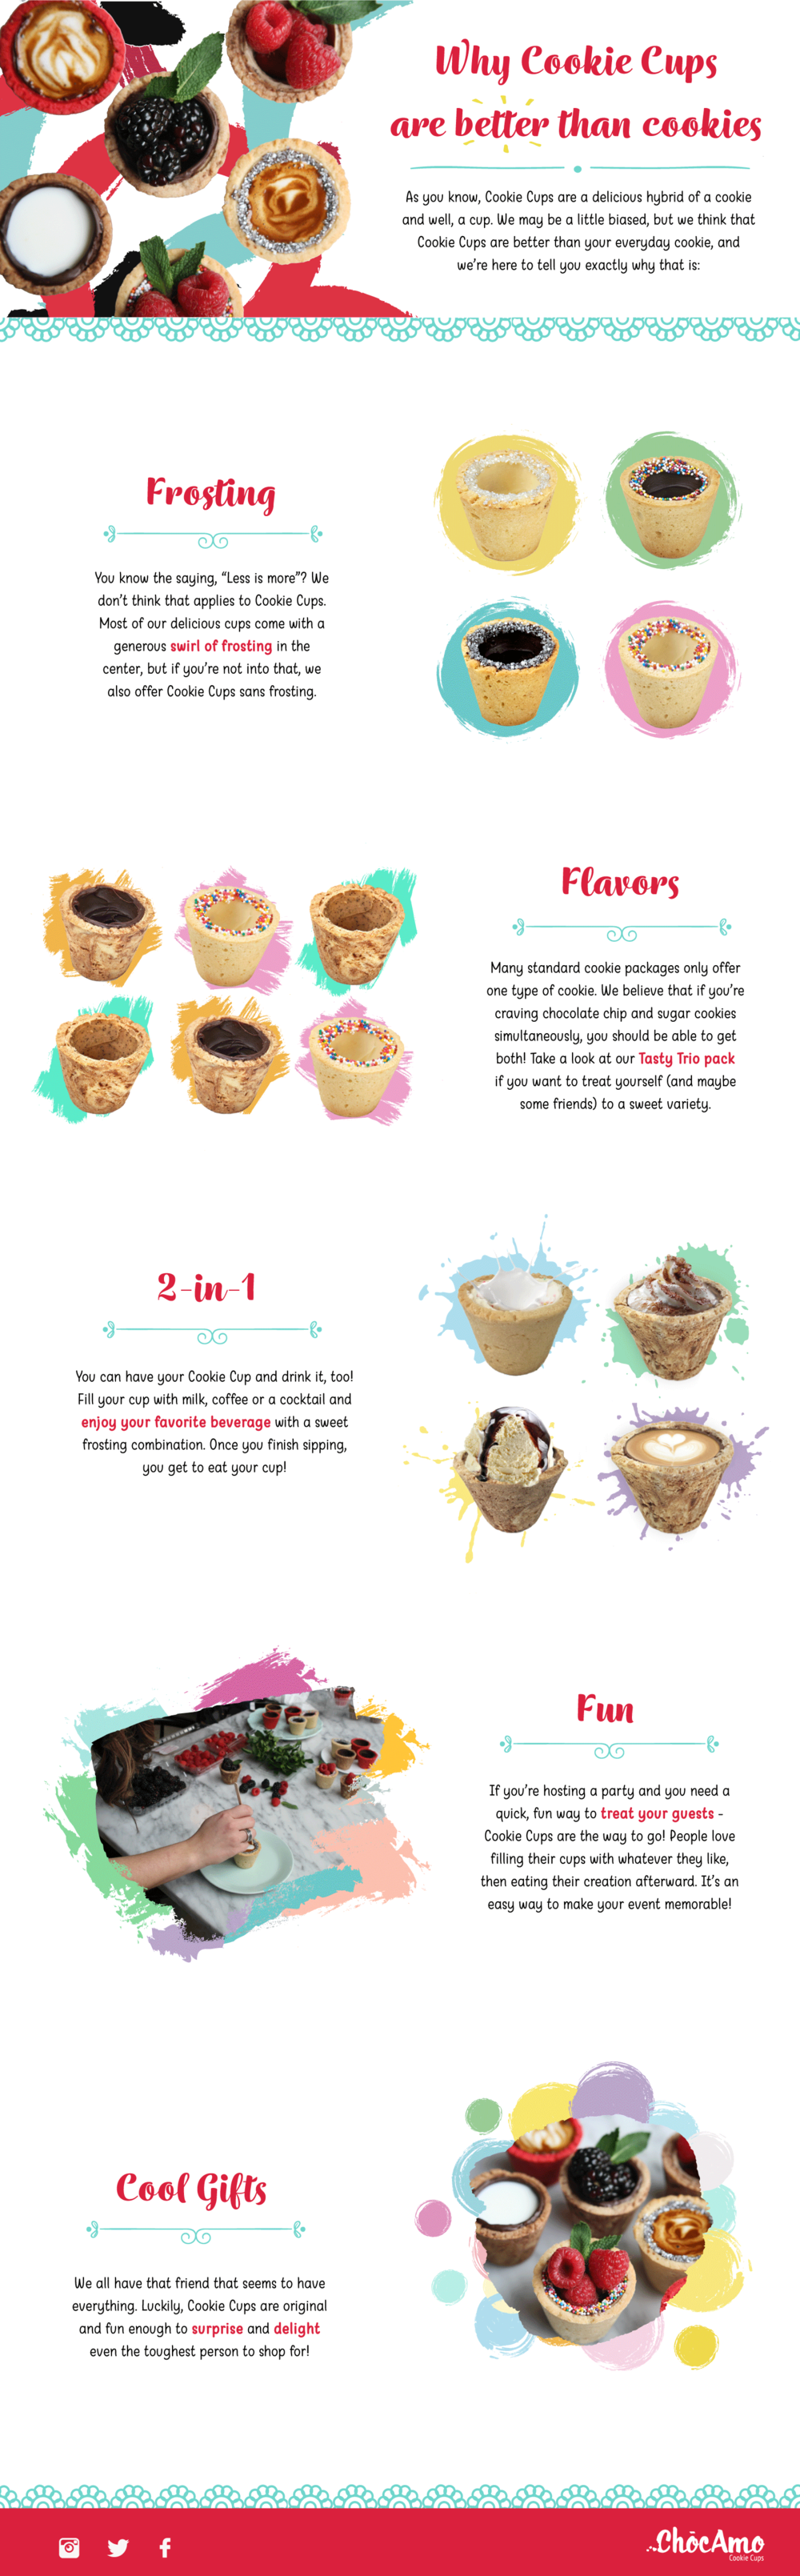 ChocAmo_infographic_Why-Cookie-cups-8-28.png